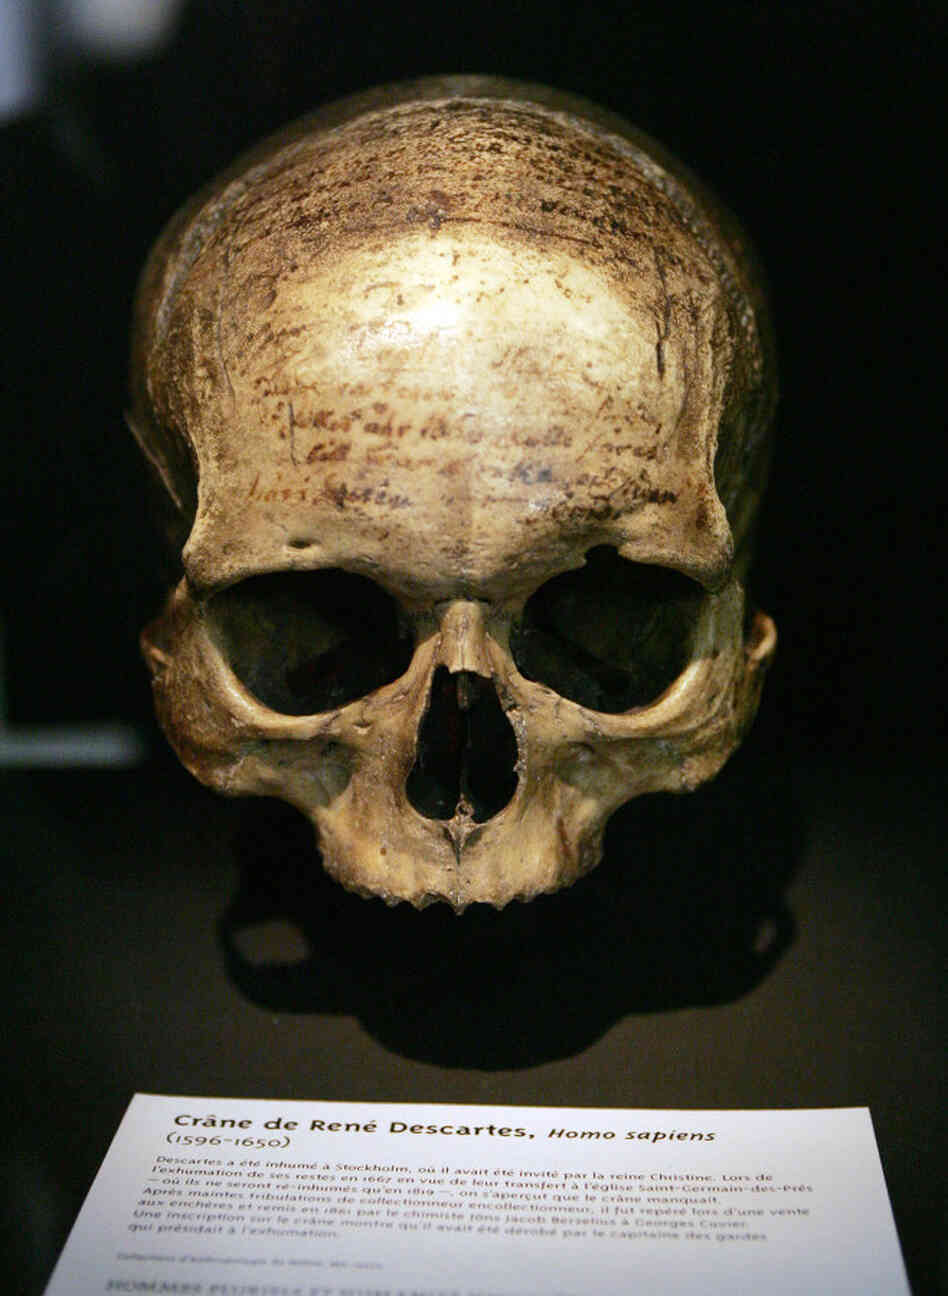 The skull of French philosopher Rene Descartes (1596-1650), displayed at the Musee de l'Homme in Paris.